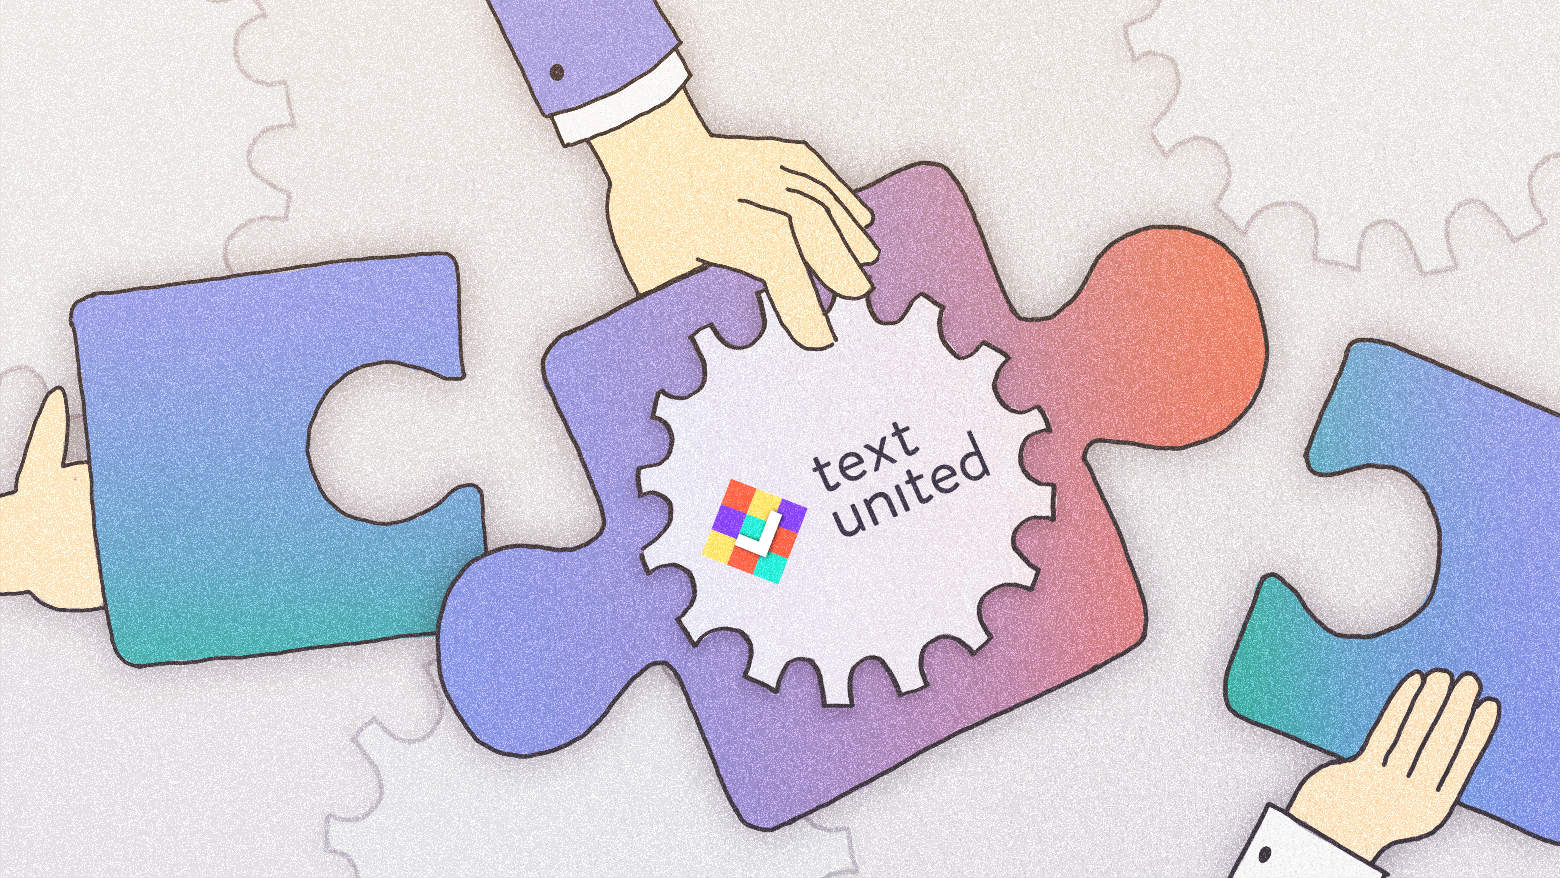 What are the Features of the Collaborative Translation Platform?